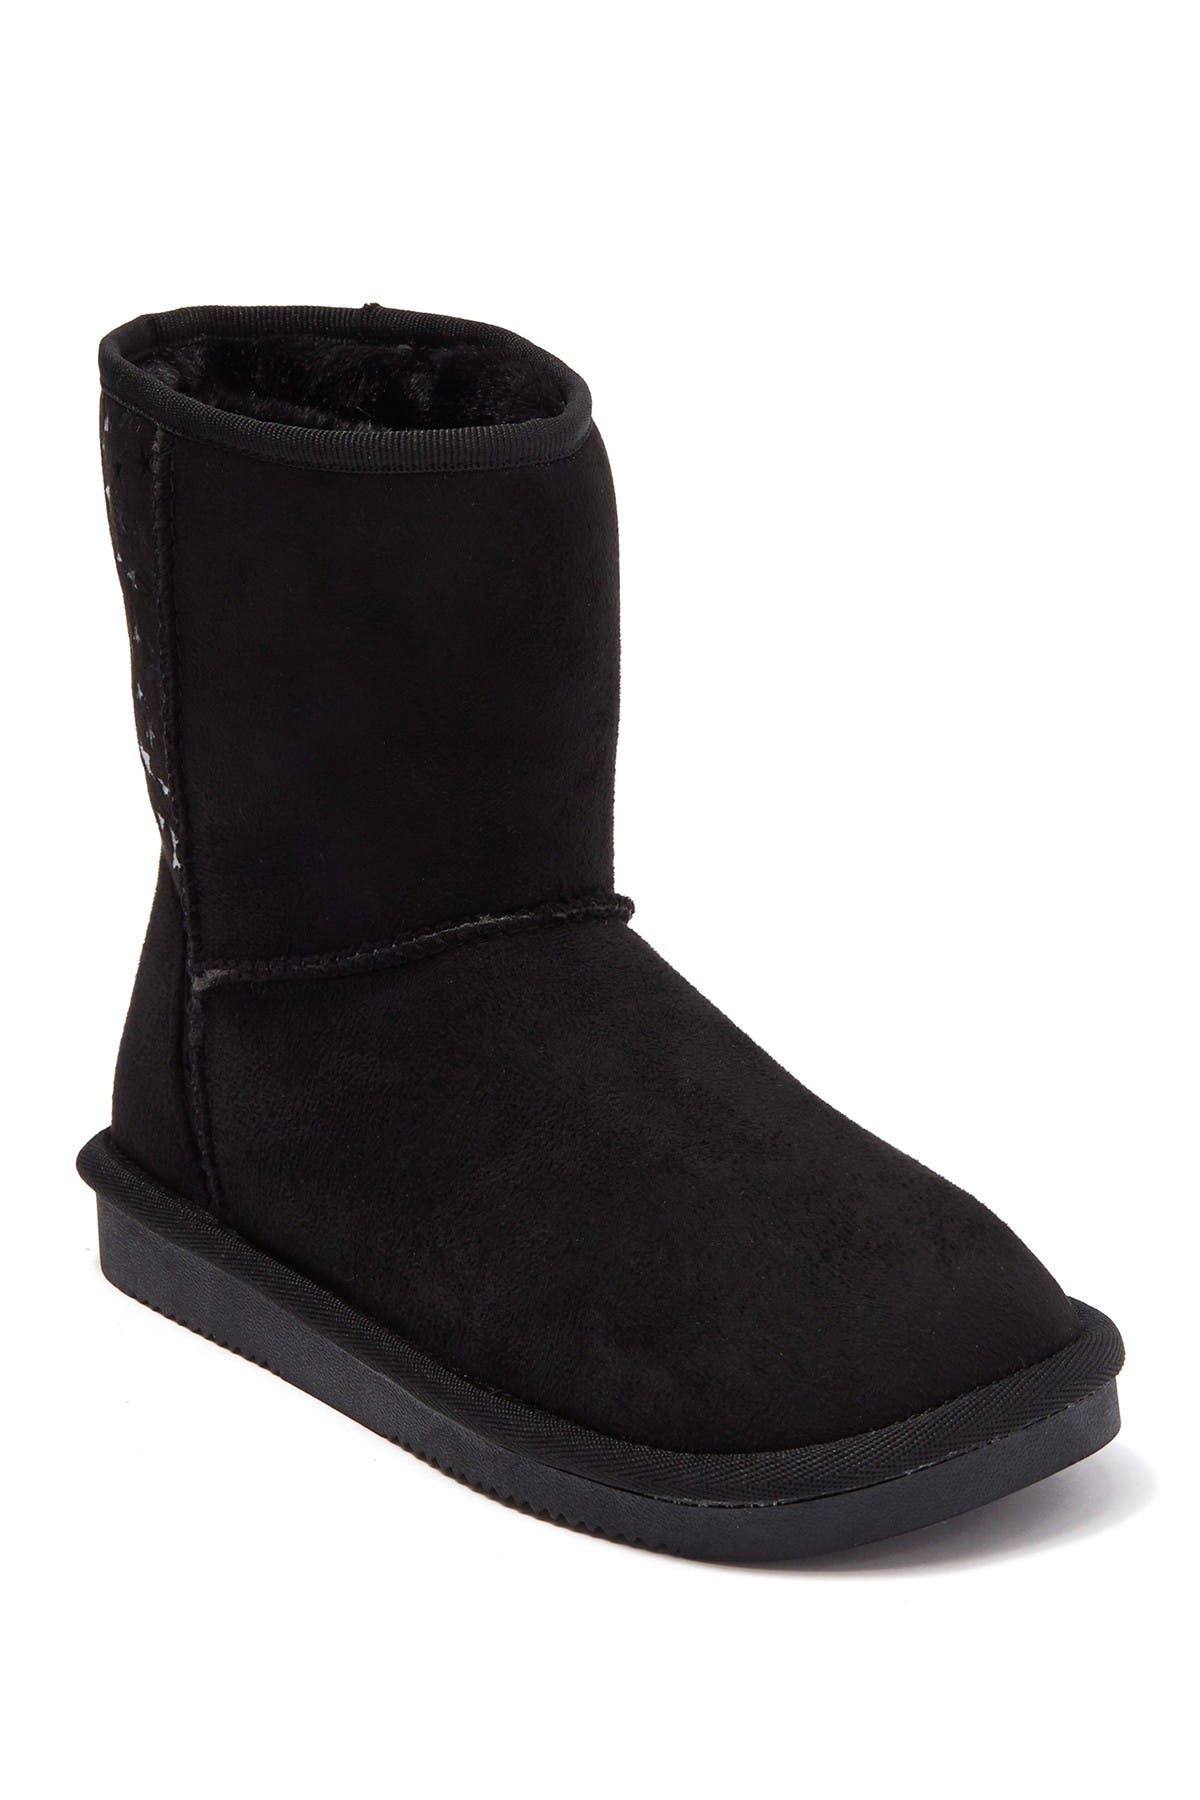 Image of Joe Fresh Fauvel Faux Fur Lined Star Print Cozy Boot